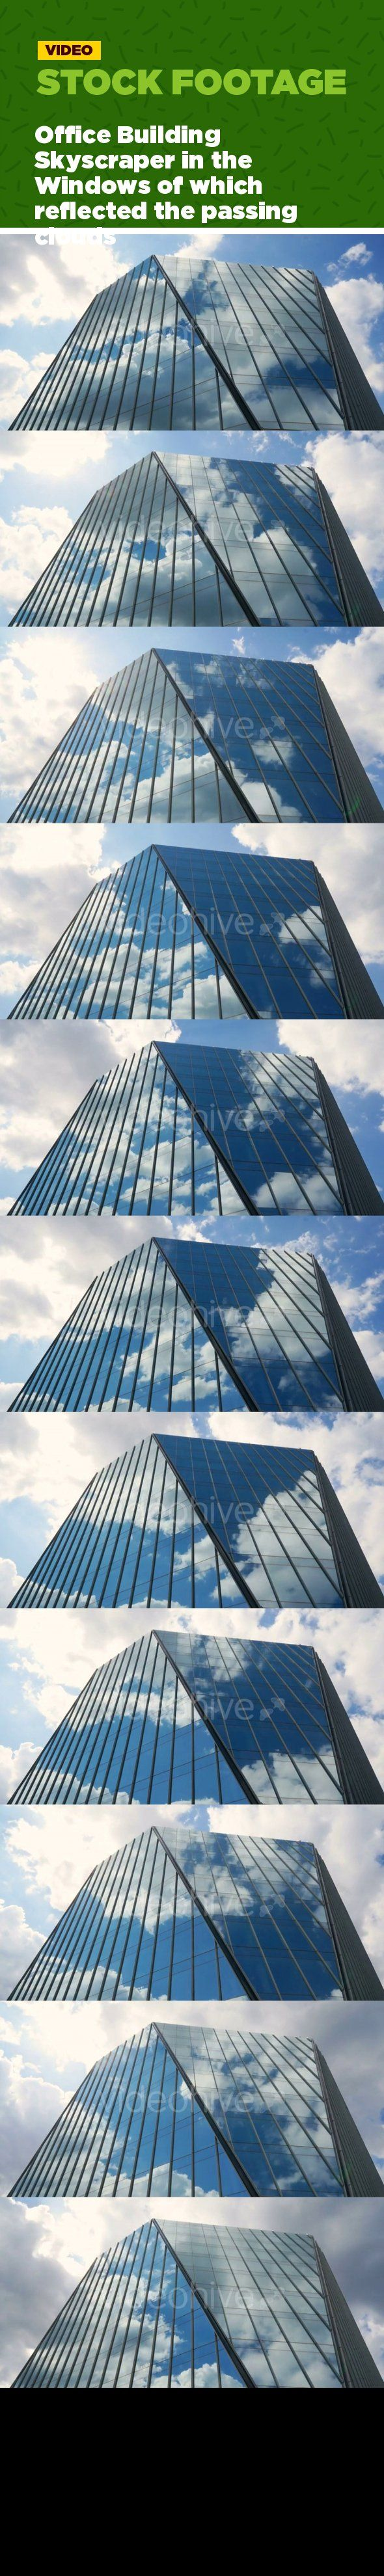 apartment, architecture, business, clear, company, financial corporation, floating clouds, modern, office building, real estate, reflection, sky, skyscraper, windows, working day Office building skyscraper. building with panoramic glass windows reflecting the clouds. 4K